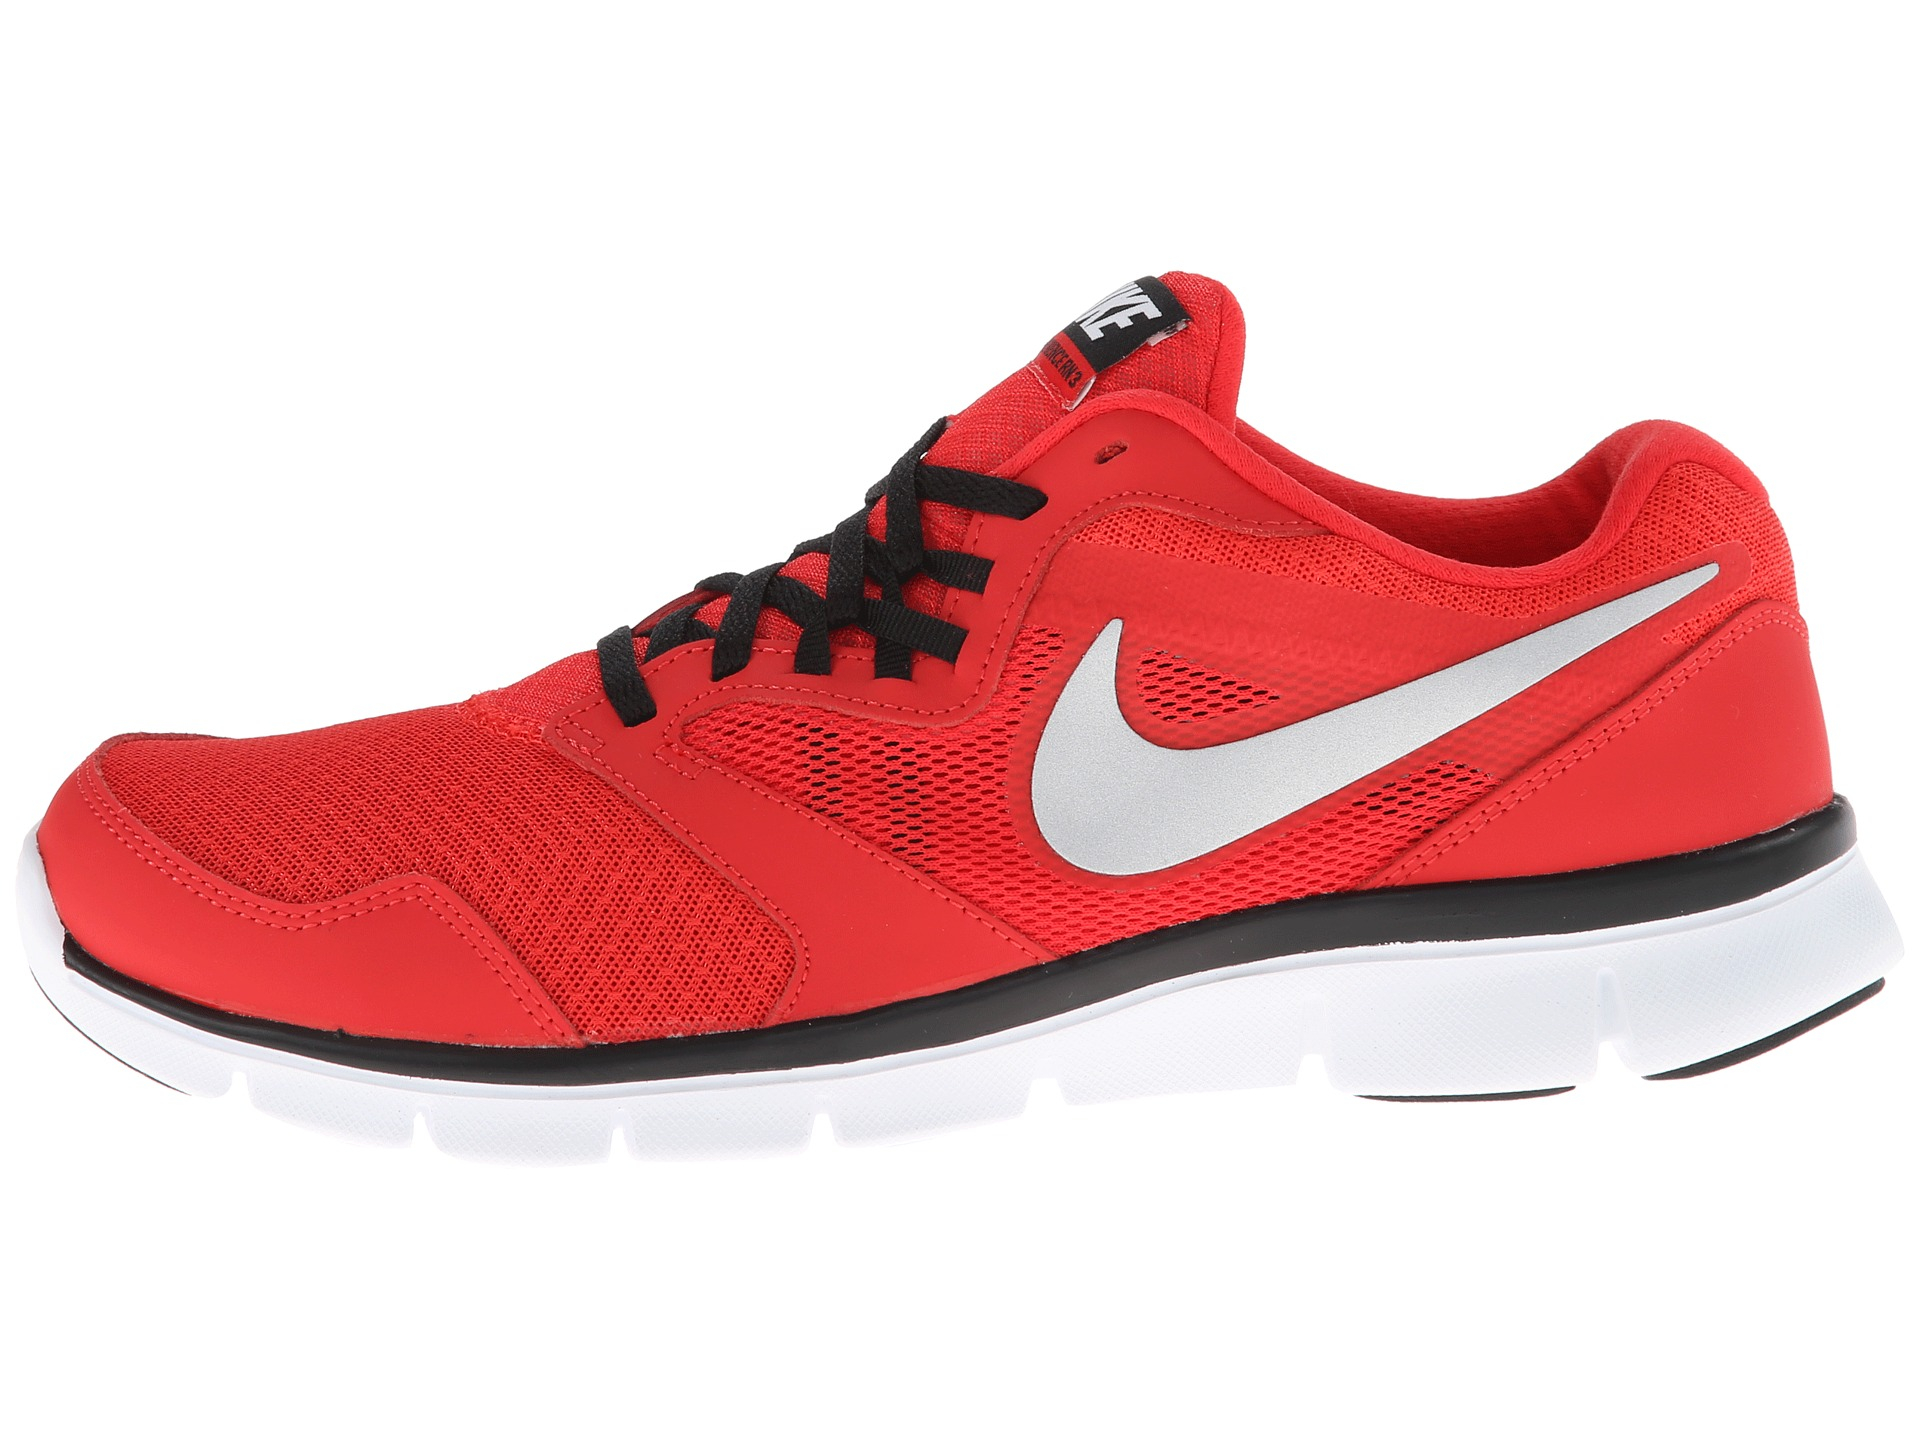 b7eacf3265d92 Lyst - Nike Flex Experience Run 3 in Red for Men